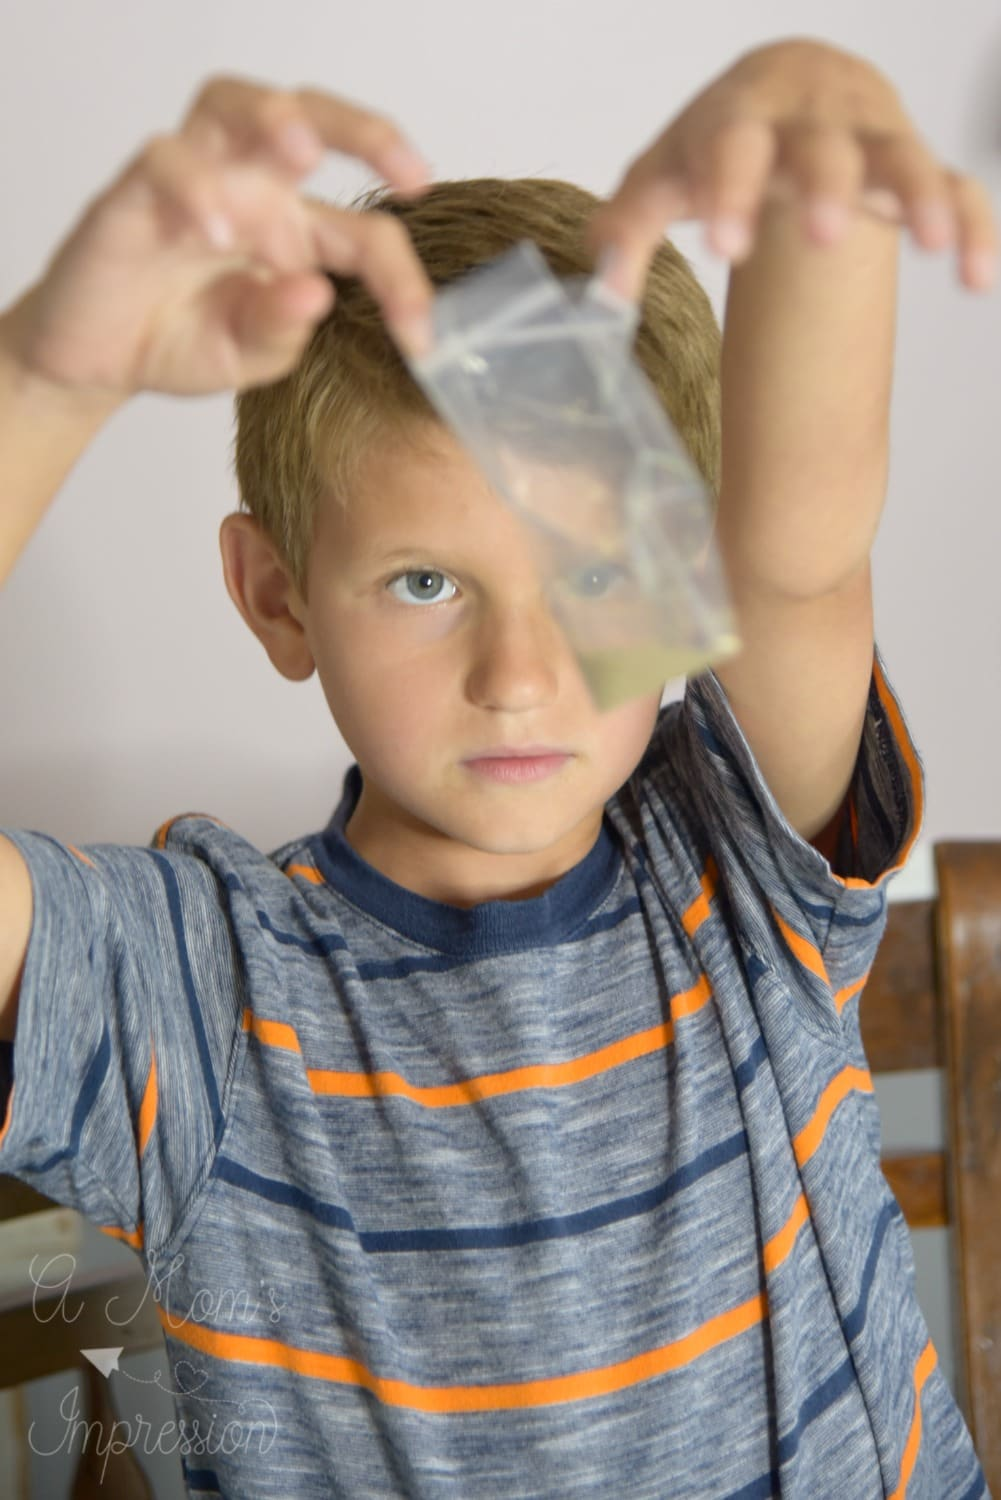 a boy looking at a science experiment